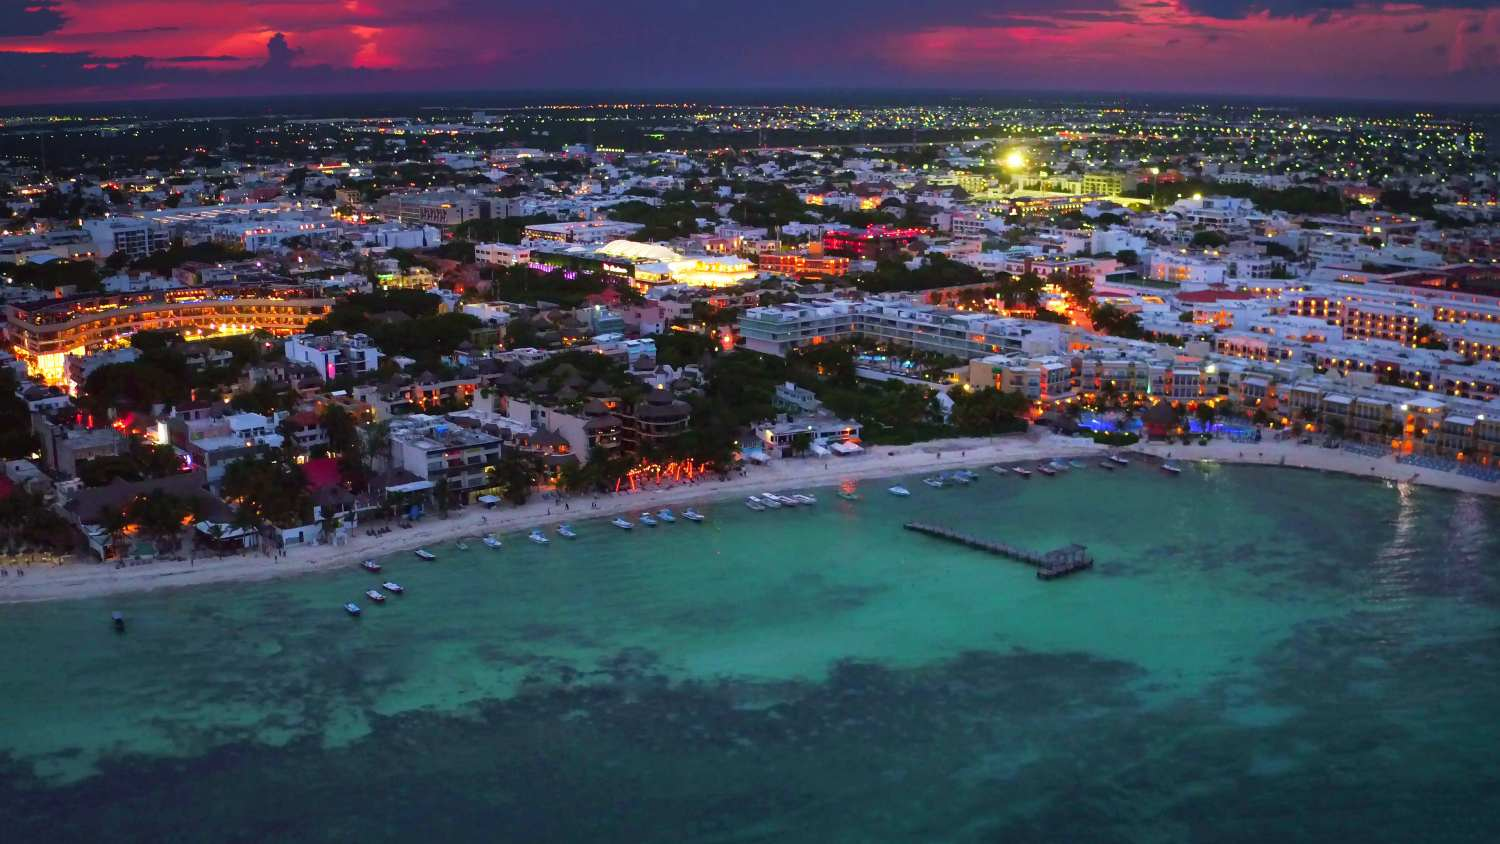 playa del carmen at night